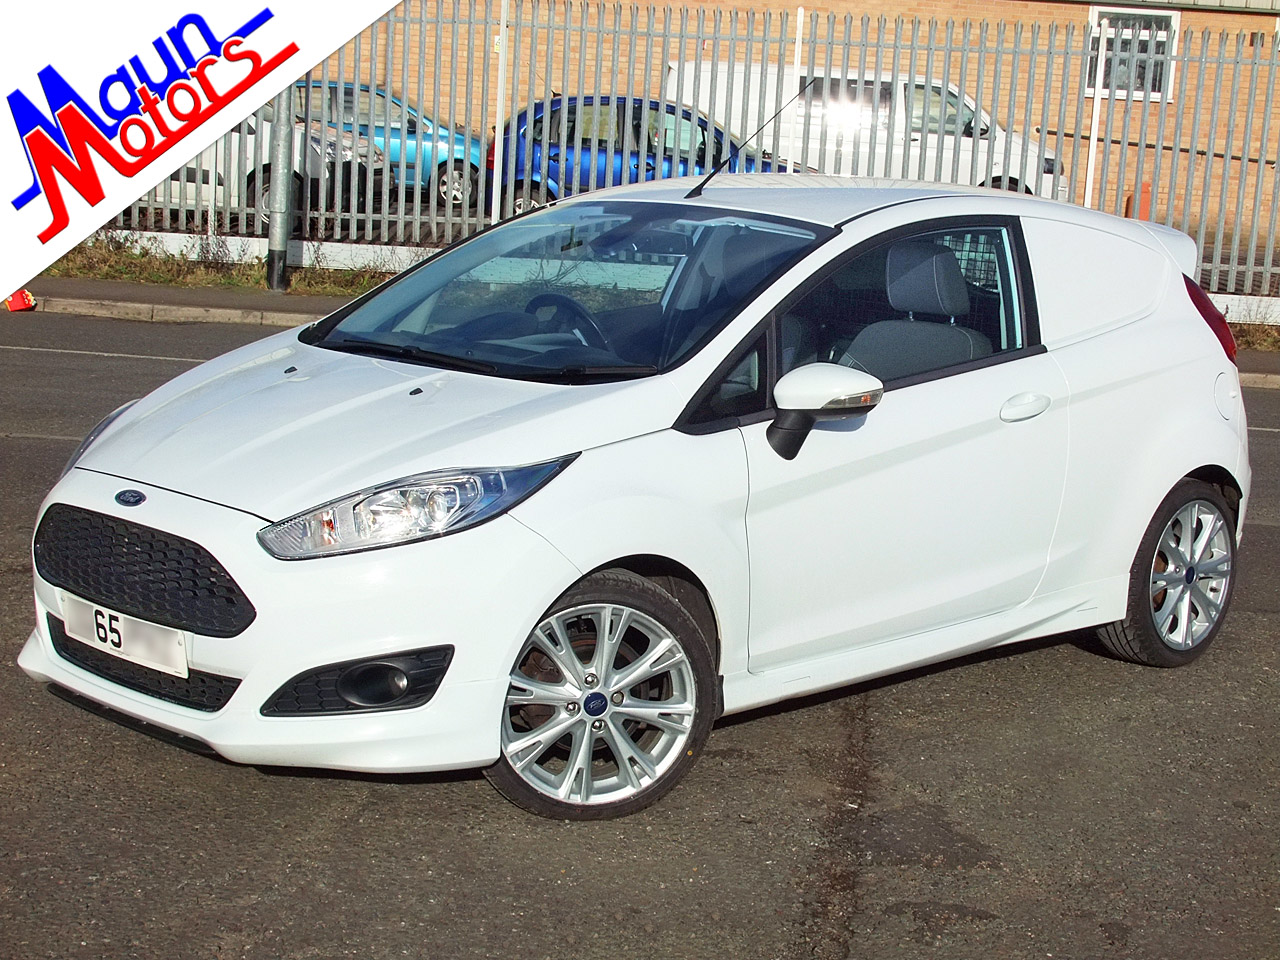 Ford Fiesta used car-derived vans for sale